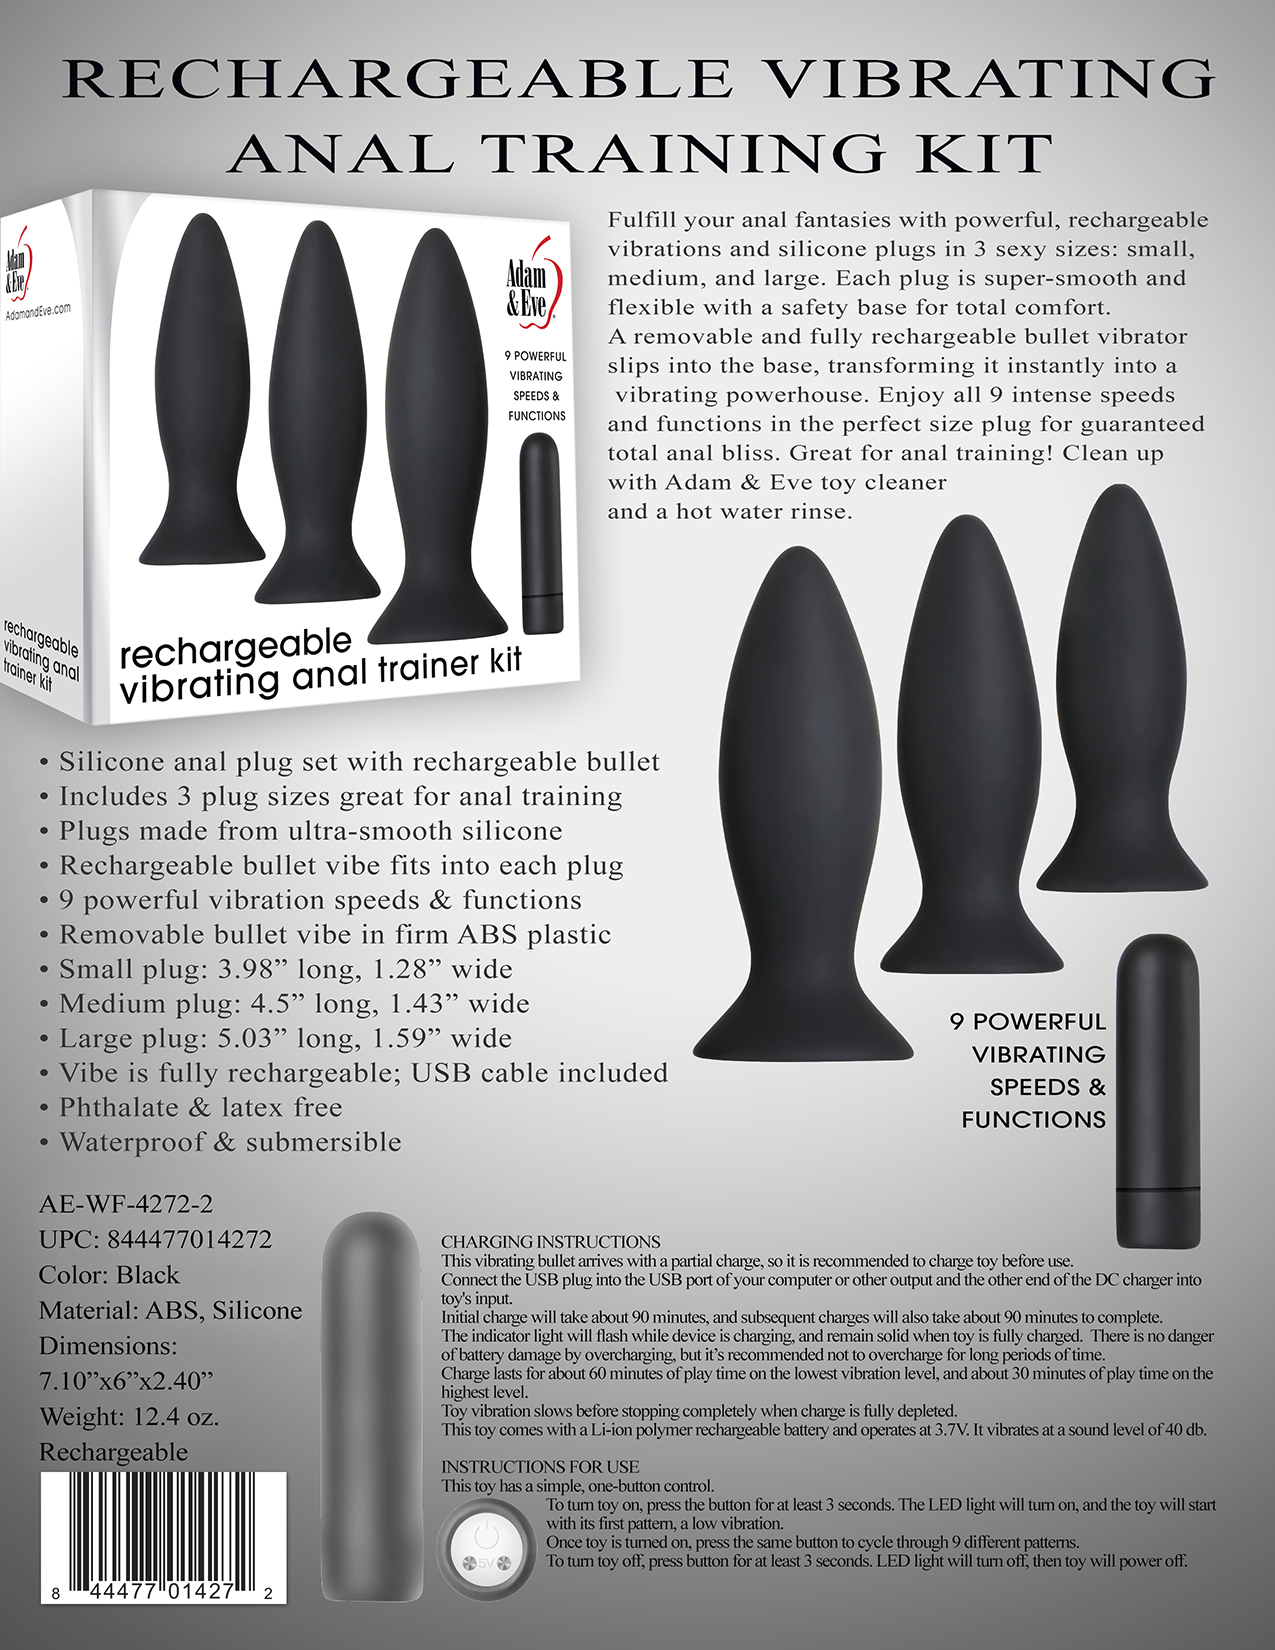 RECHARGEABLE-VIBRATING-ANAL-TRAINER-KIT-back.jpg